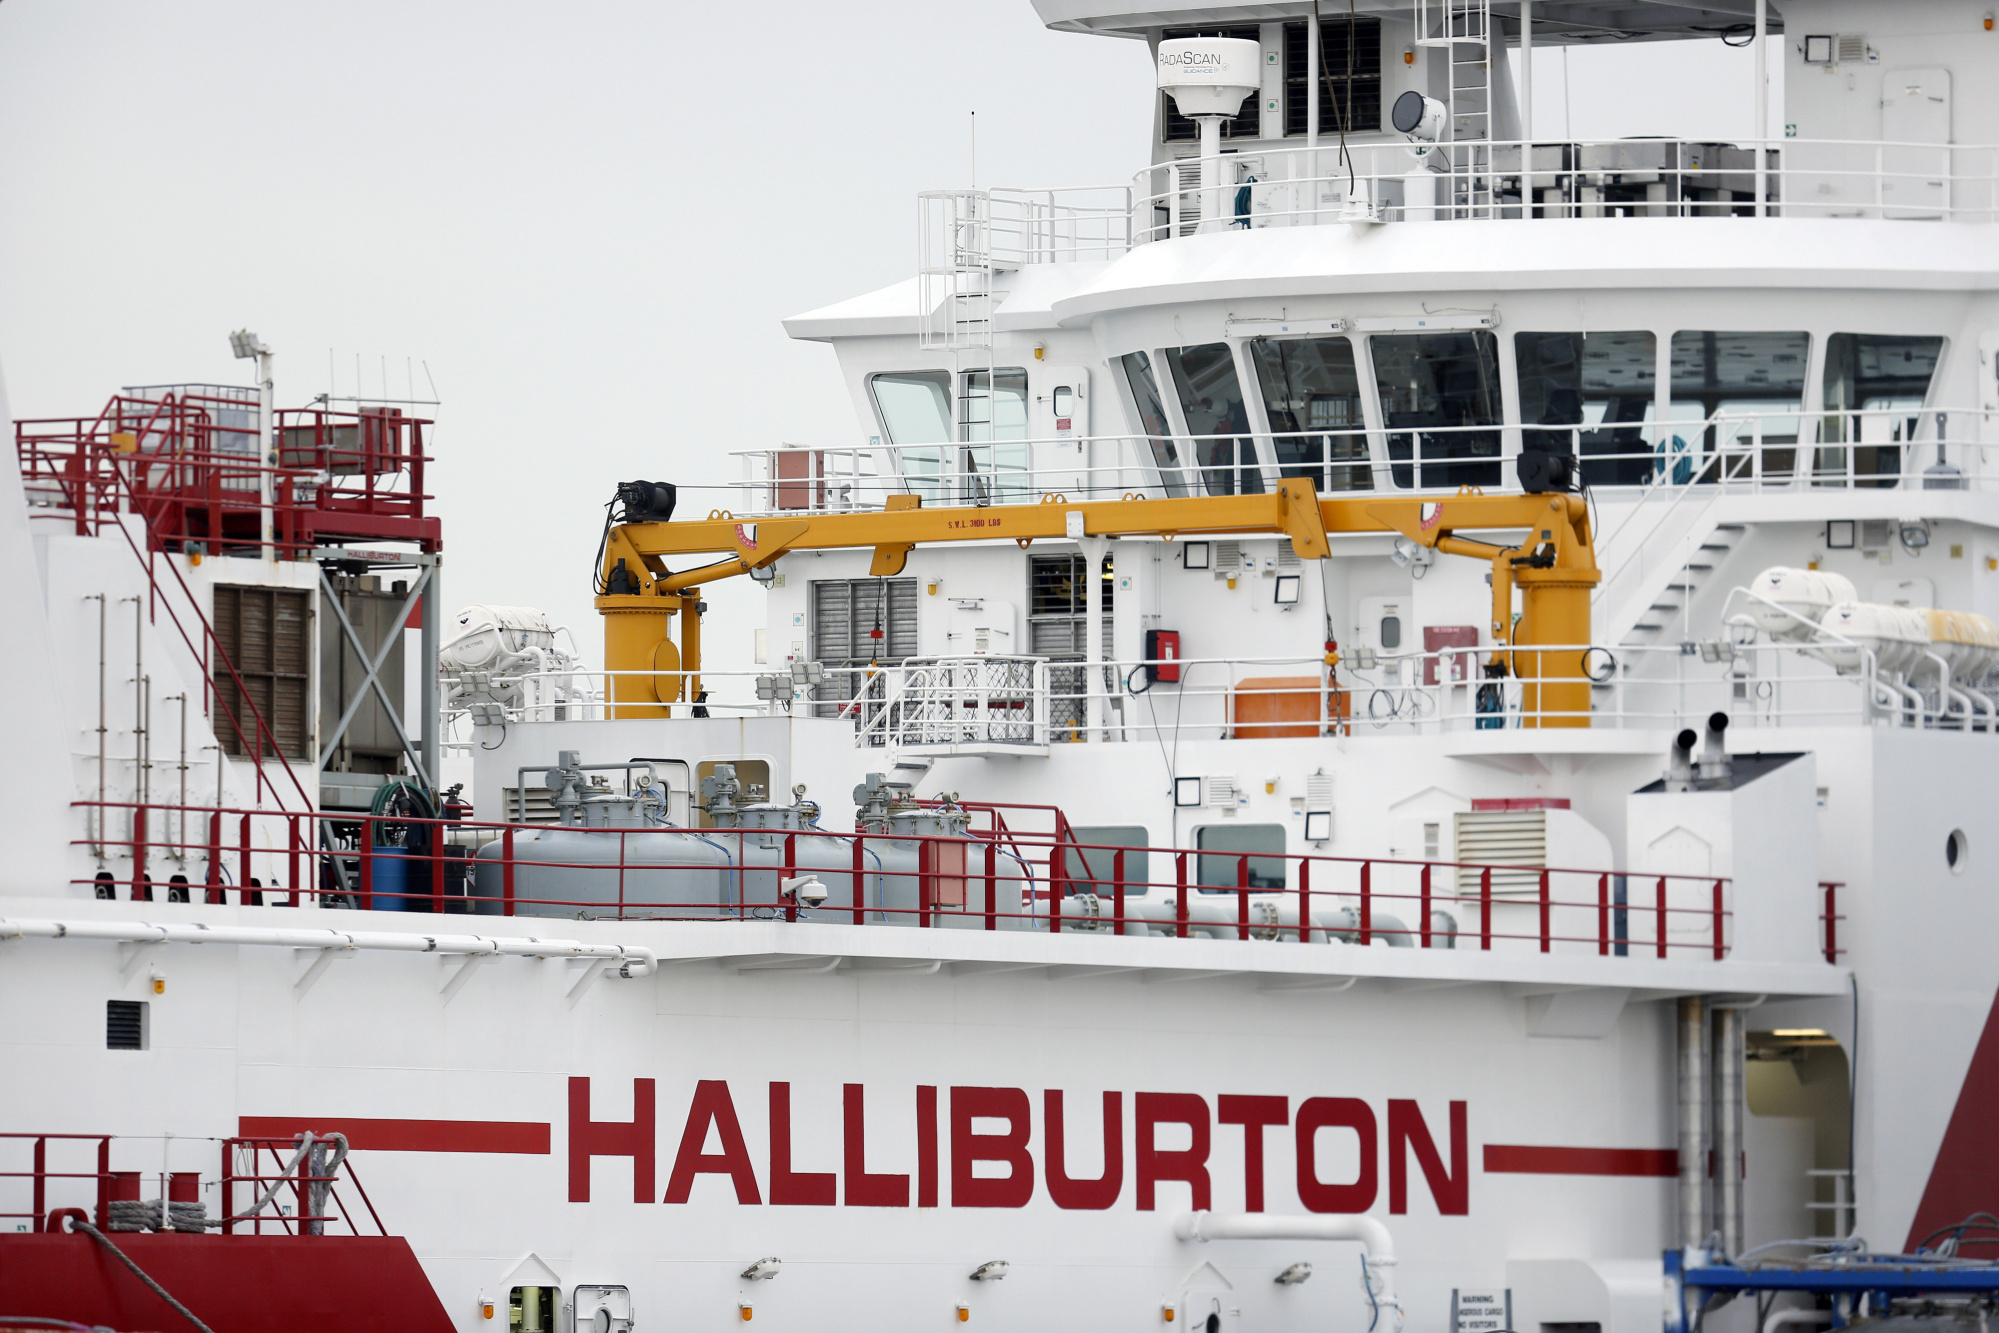 A Halliburton Co. petroleum industry vessel sits docked in Port Fourchon, Louisiana, U.S., on Thursday, Feb. 8, 2018. Photographer: Luke Sharrett/Bloomberg